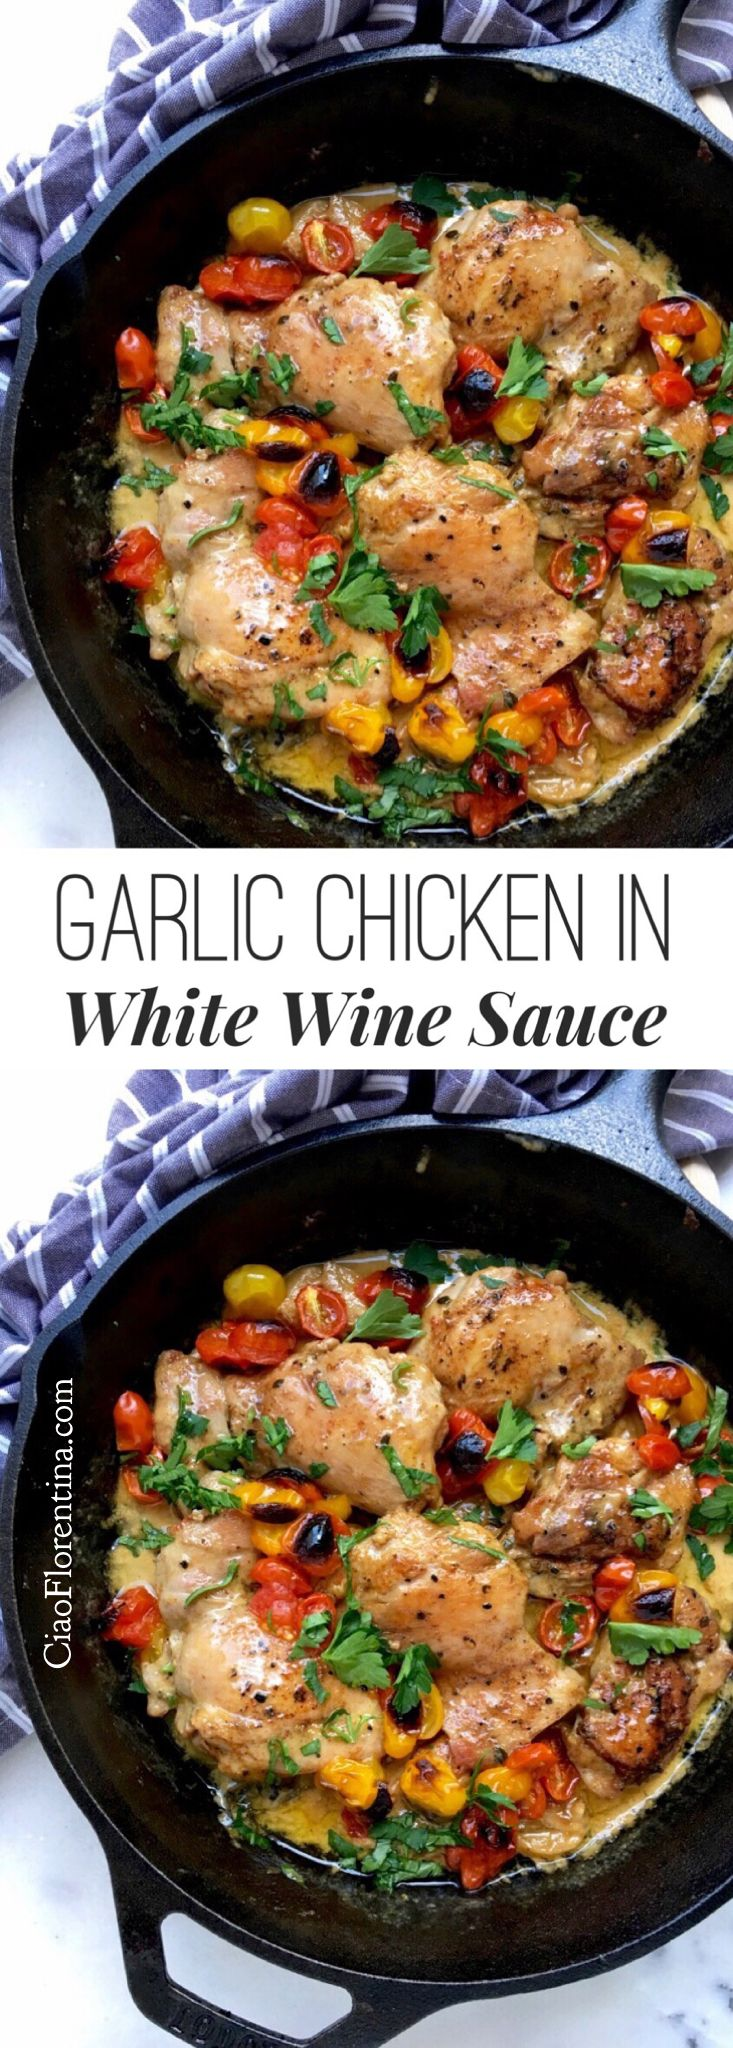 Garlic Chicken in White Wine Sauce Italian Style, with Thyme and Tomatoes  ??| CiaoFlorentina.com @CiaoFlorentina